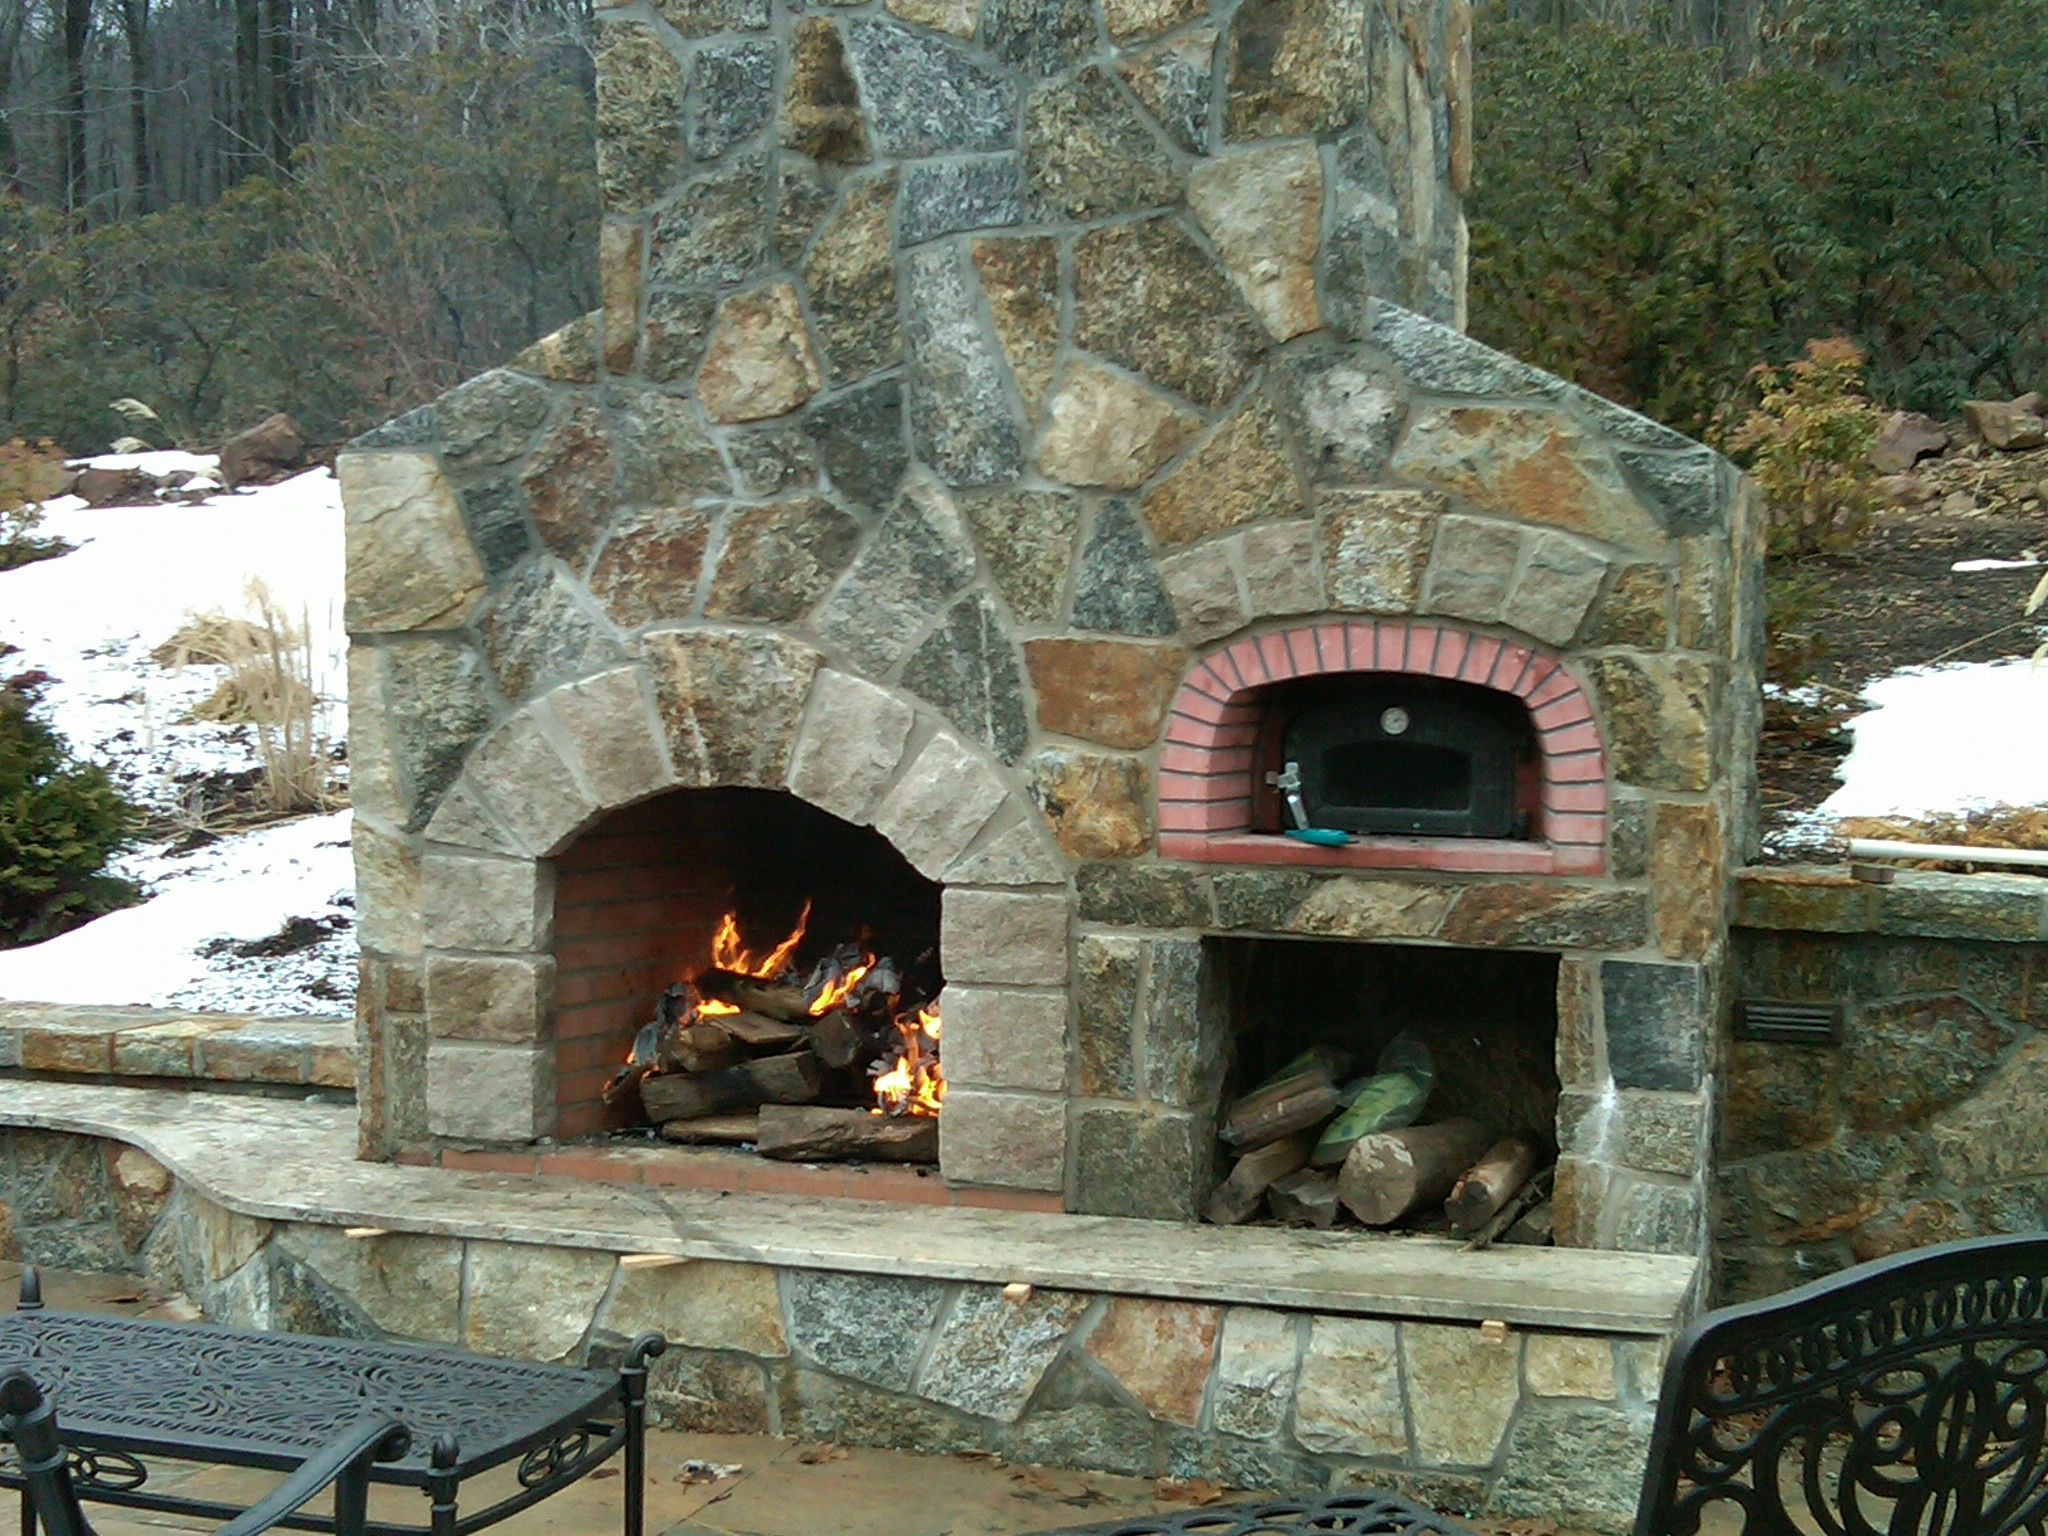 Outdoor Fireplaces Are The Best. We Build The Preferred Lifestyle